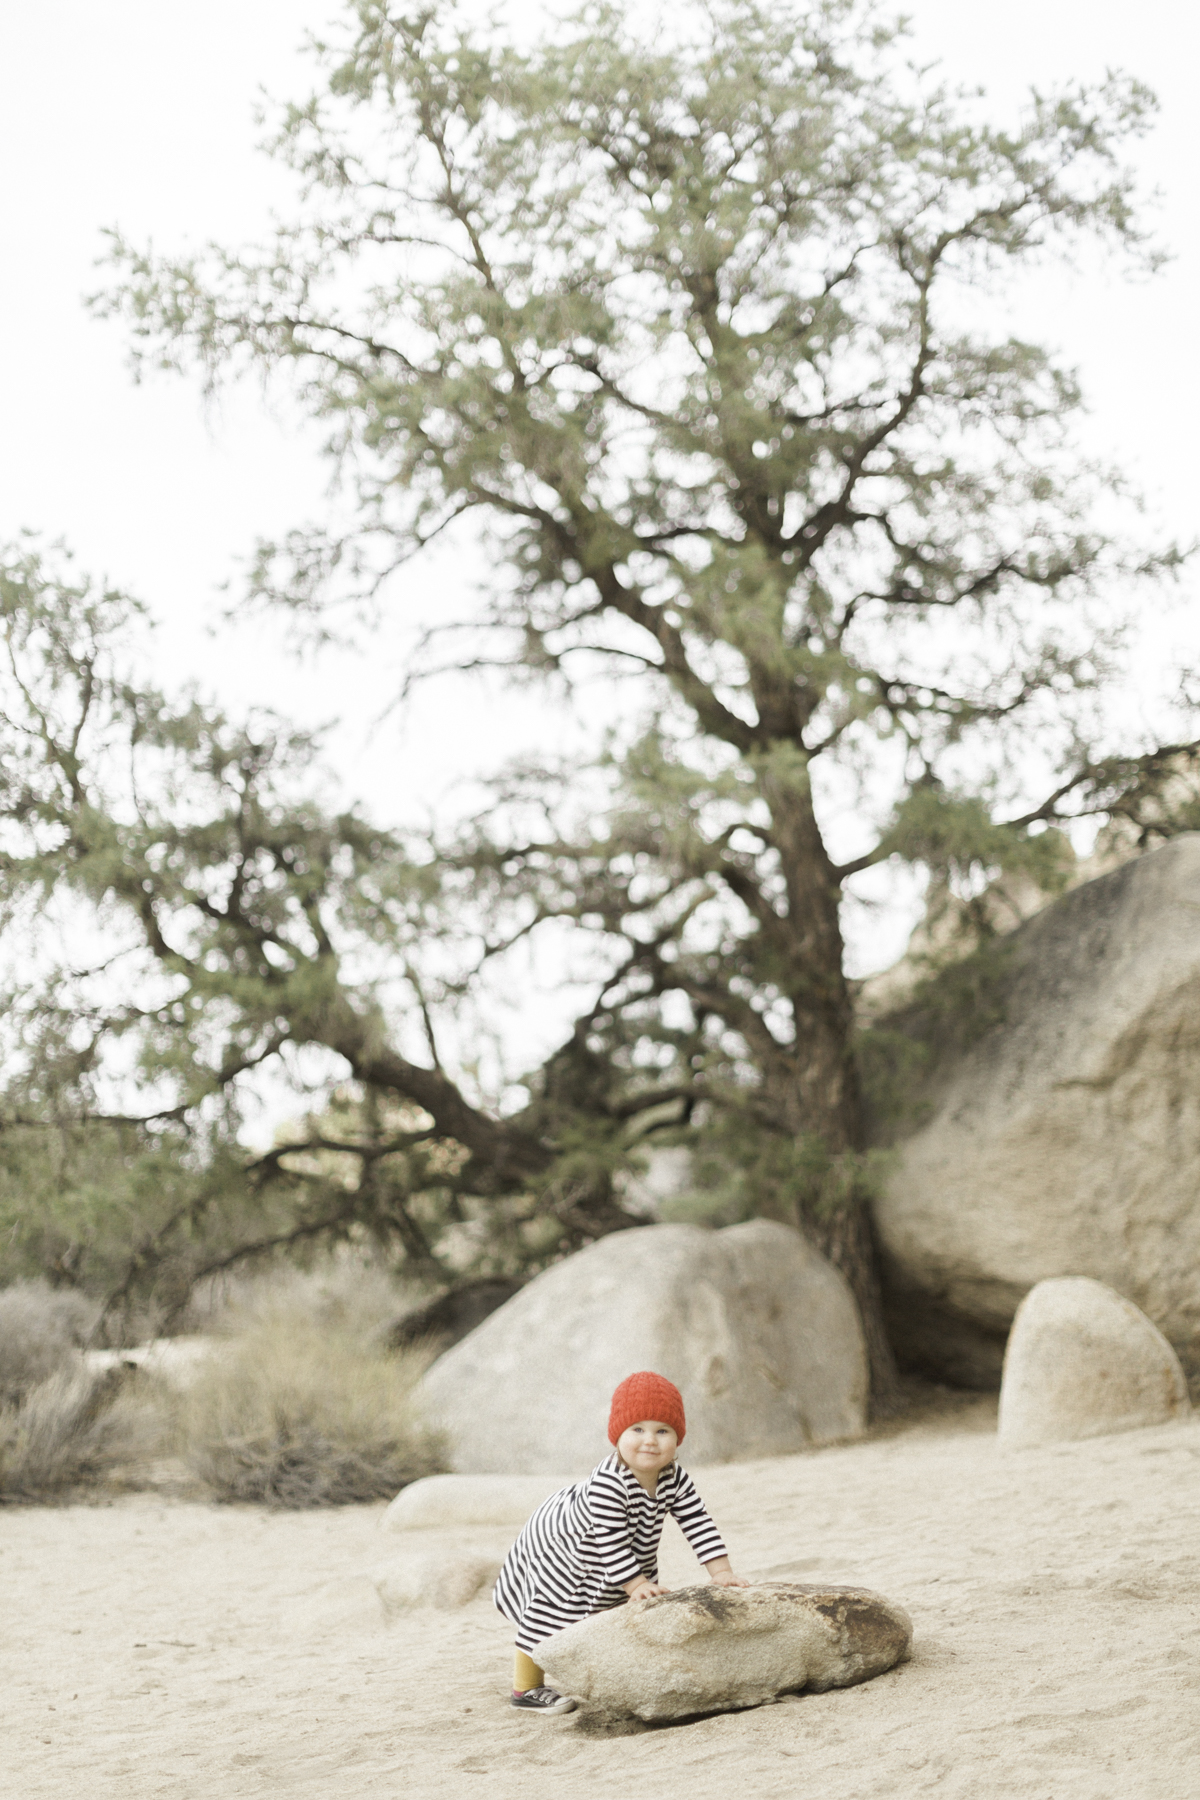 Joshua-Tree-calgary-kids-photography-shop-the-skinny-3.jpg